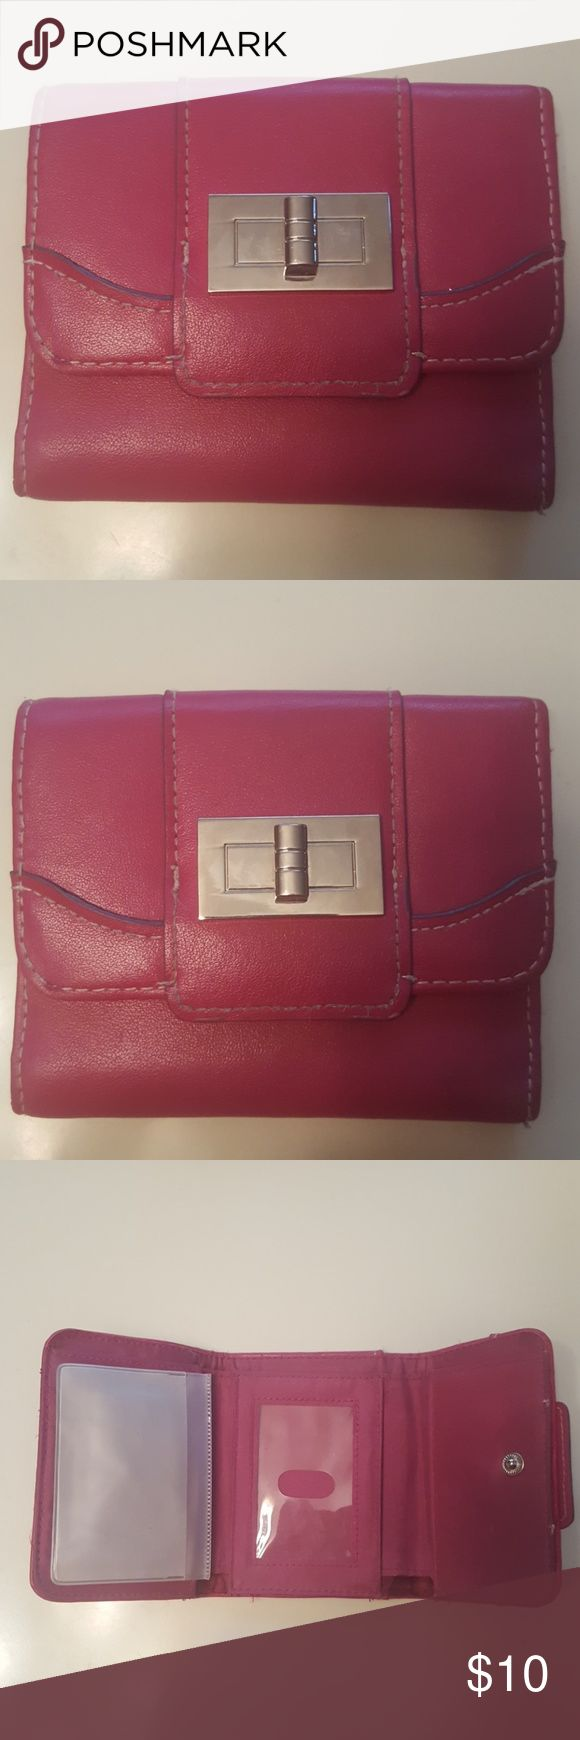 NWOT SMALL HOT PINK WALLET FROM DILLARDS THIS IS A NWOT SIZE SMALL WOMEN'S HOT PINK WALLET, IT IS A SNAP CLOSURE. OPENED UP HAS 5 SLOTS FOR CREDIT CARDS/ETC. A LONG POCKET FOR DOLLAR BILLS & 8 PLASTIC SLOTS FOR PHOTOS. A SLOT ON THE OUTSIDE BACK AS WELL. SILVER ACCESSORY ON THE FRONT. BOUGHT FROM DILLARDS FOR ABOUT $25 DOLLARS. PRICE IS FIRM, NO TRADES, 25% OFF TWO OR MORE OF MY LISTINGS. THANK YOU! dillards Bags Wallets